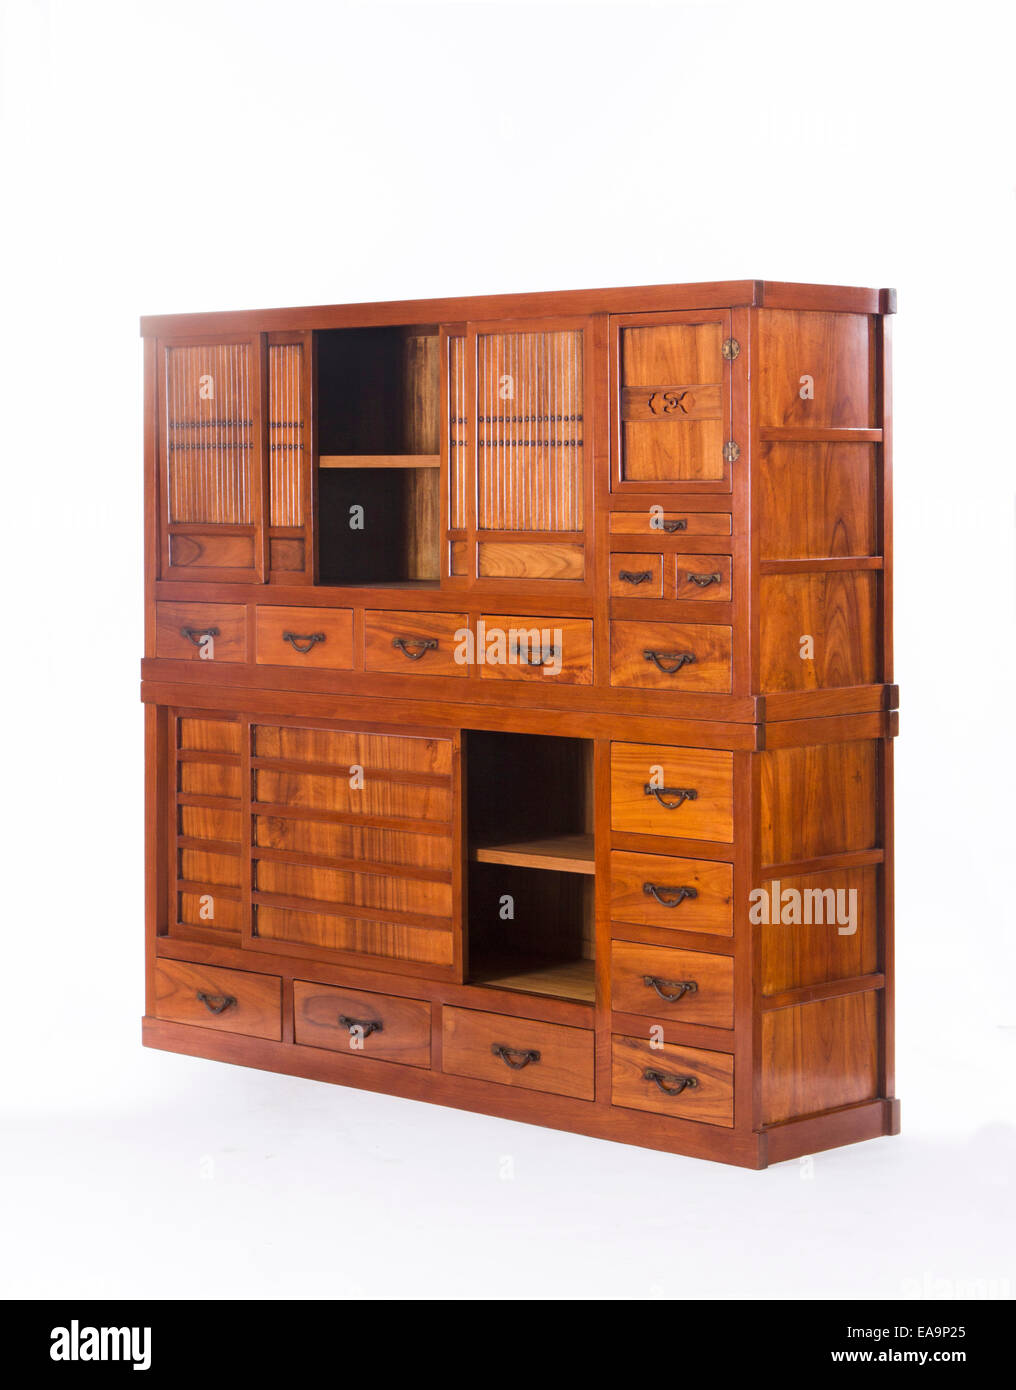 Antique Chinese cabinets - Antique Chinese Cabinets Stock Photo: 75202909 - Alamy